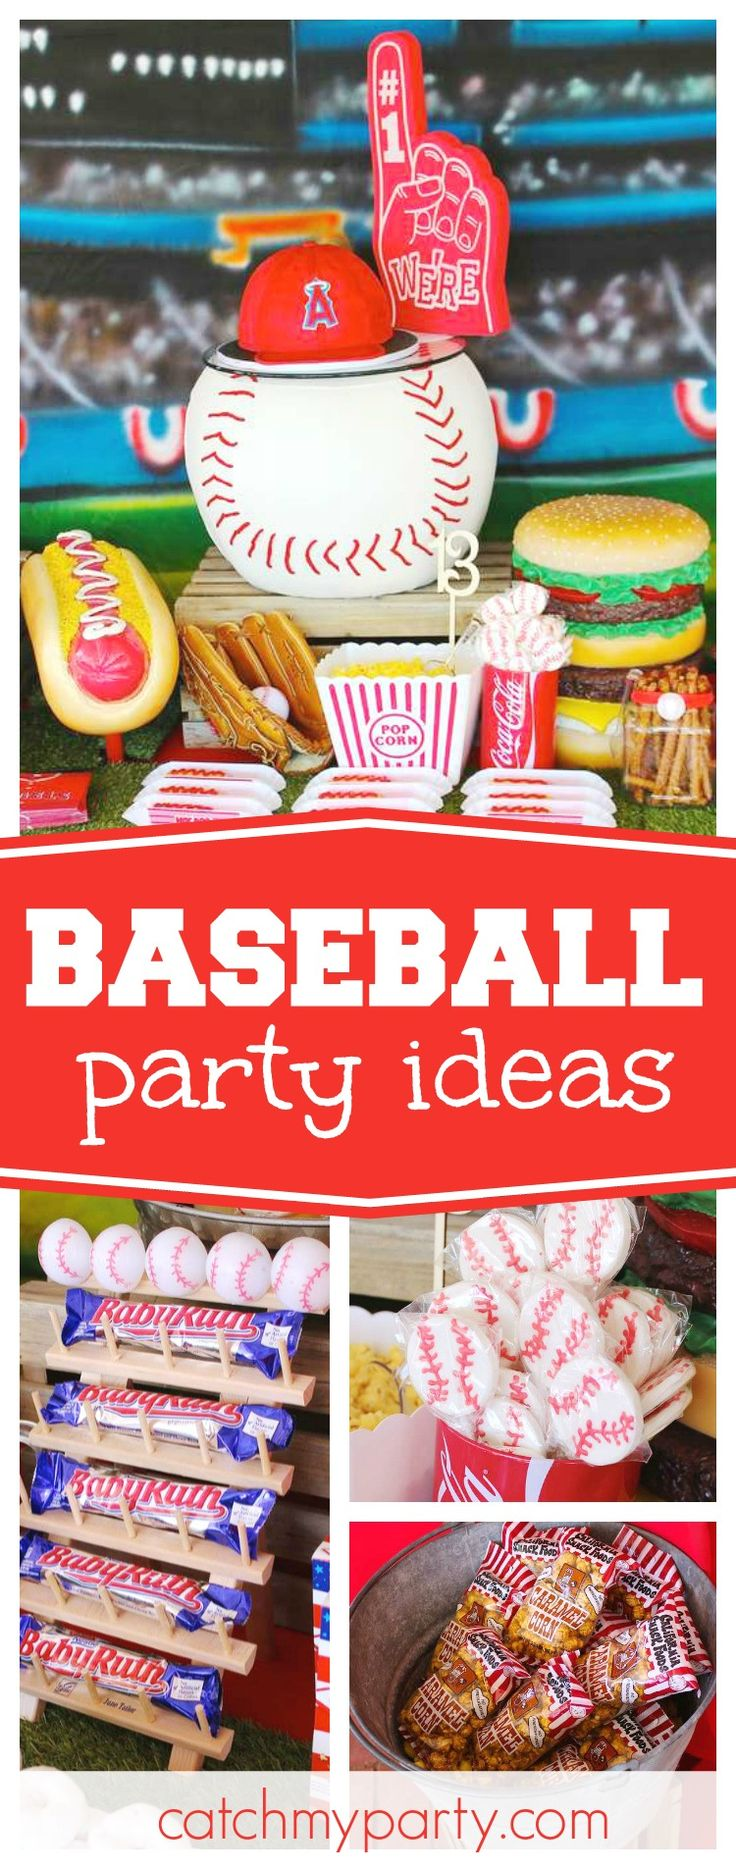 Check out this fun Baseball birthday party! The dessert table is awesome!! See more party ideas and share yours at CatchMyParty.com